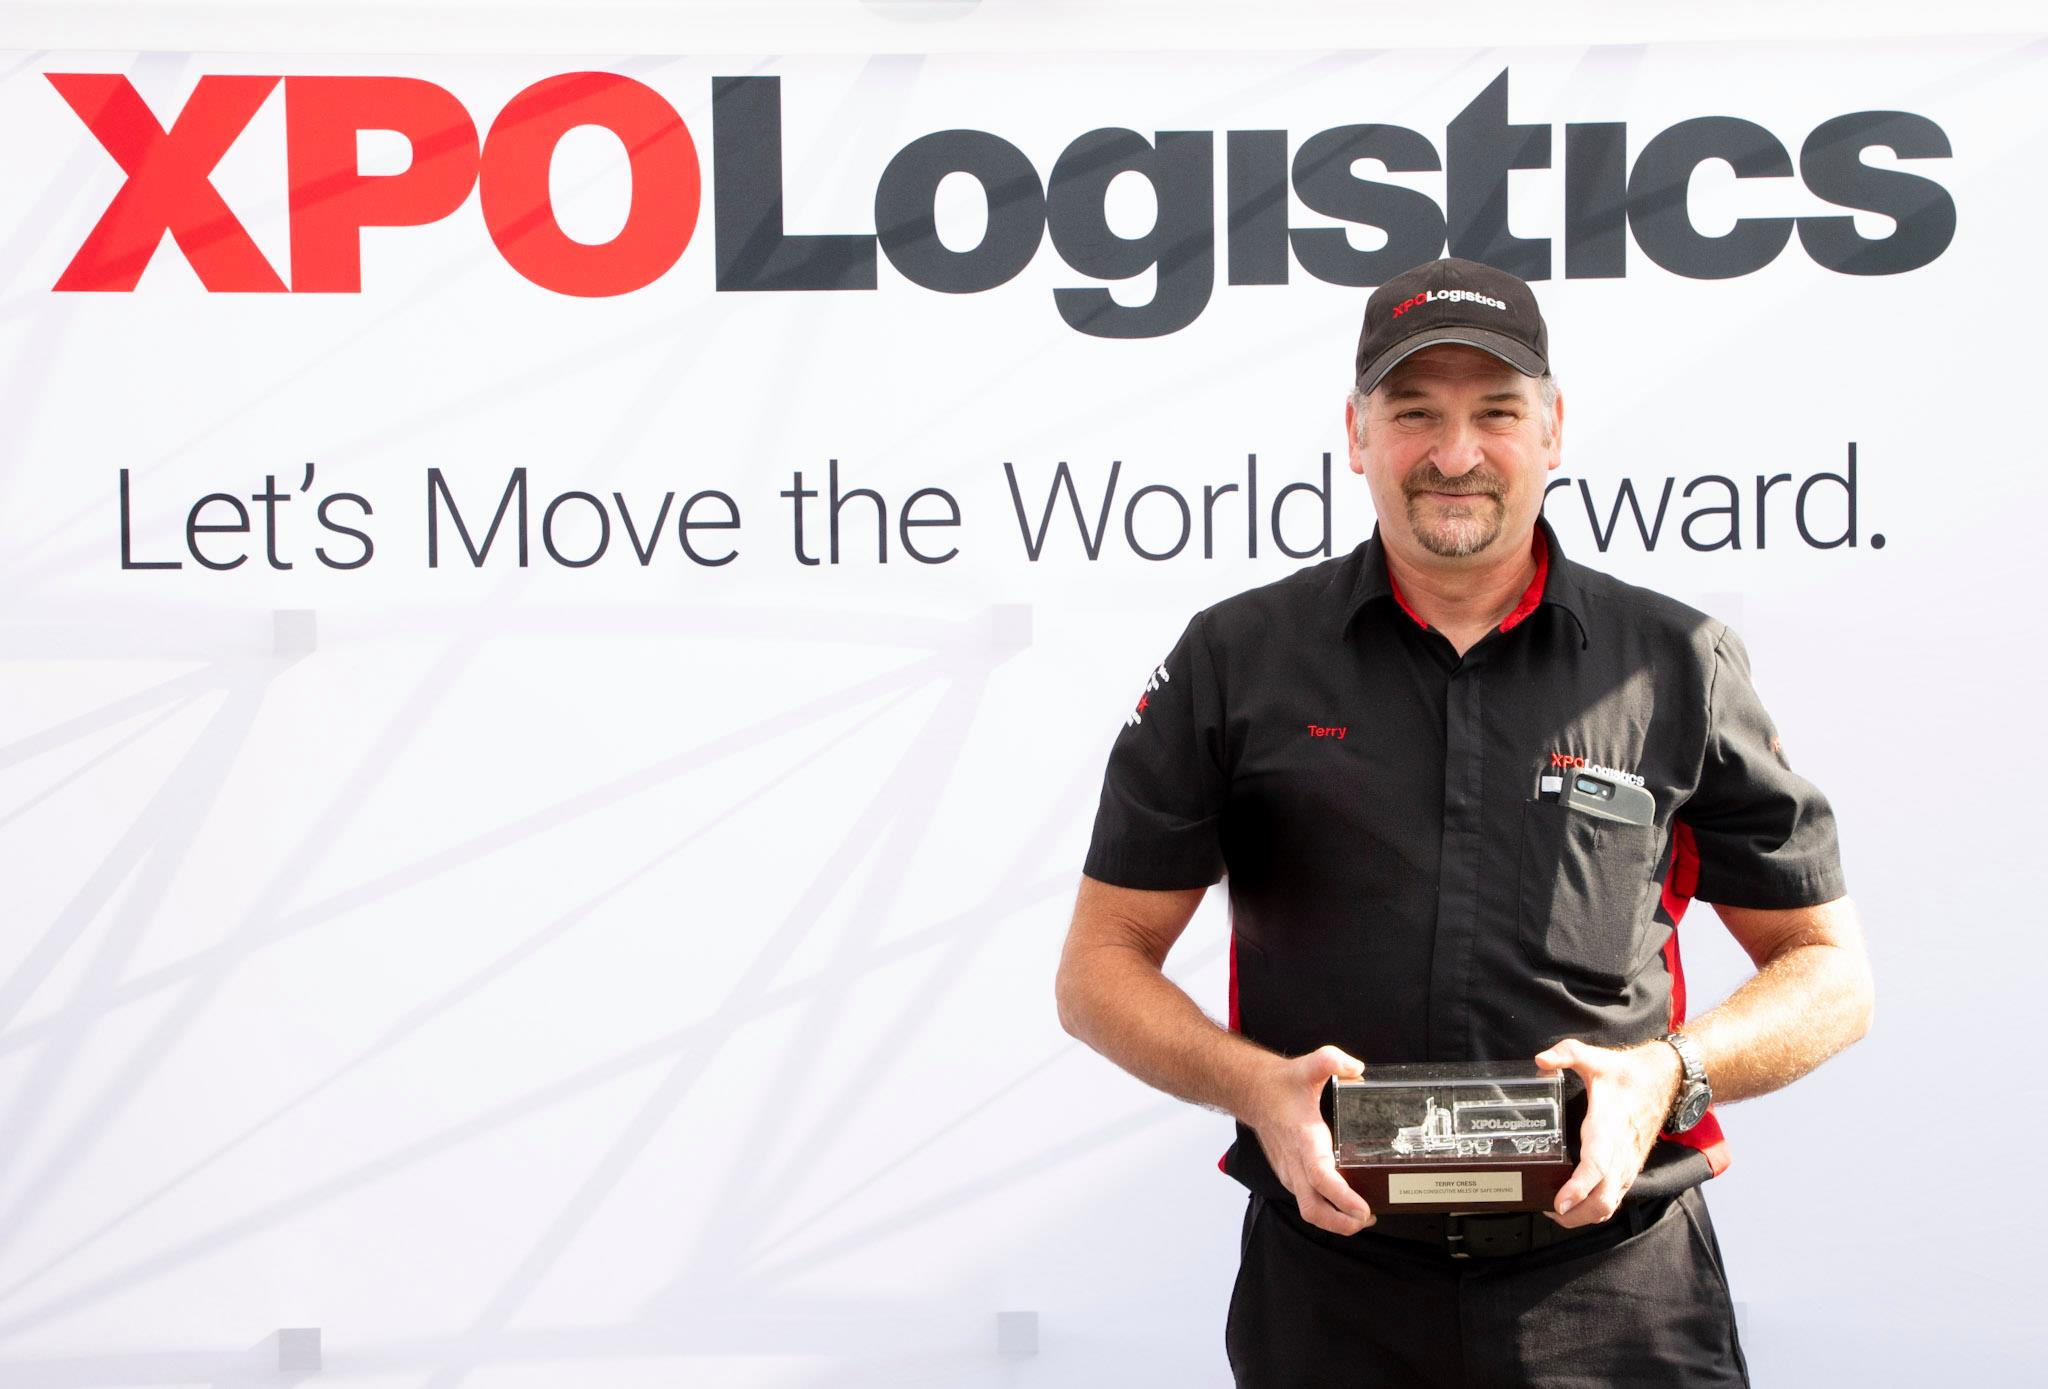 XPO Logistics Mission, Benefits, and Work Culture | Indeed com